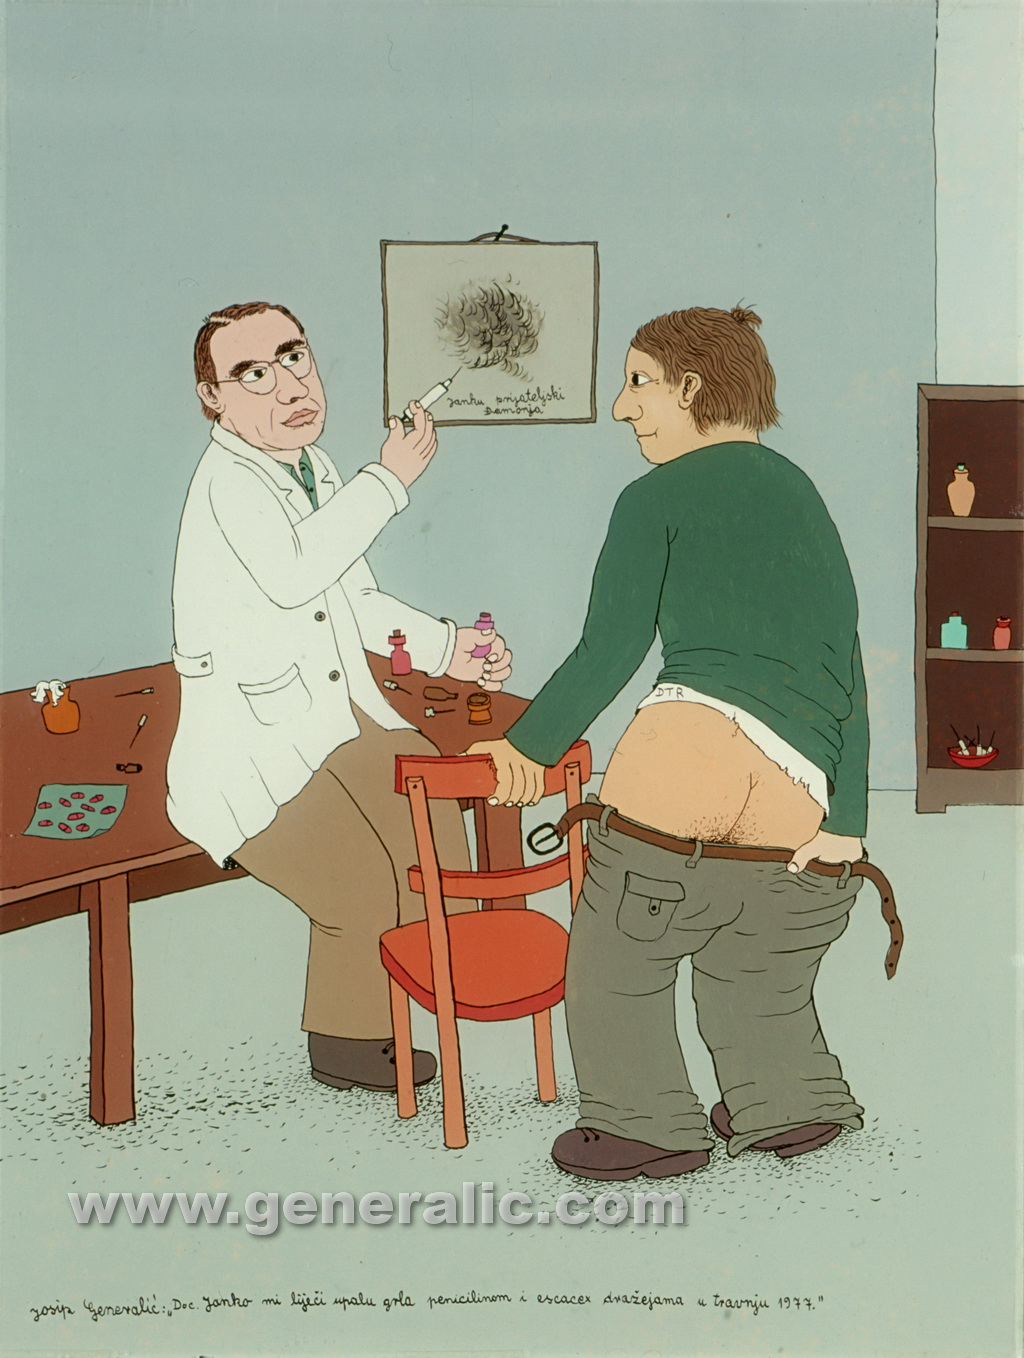 Josip Generalic, 1977, At the doctors, oil on glass